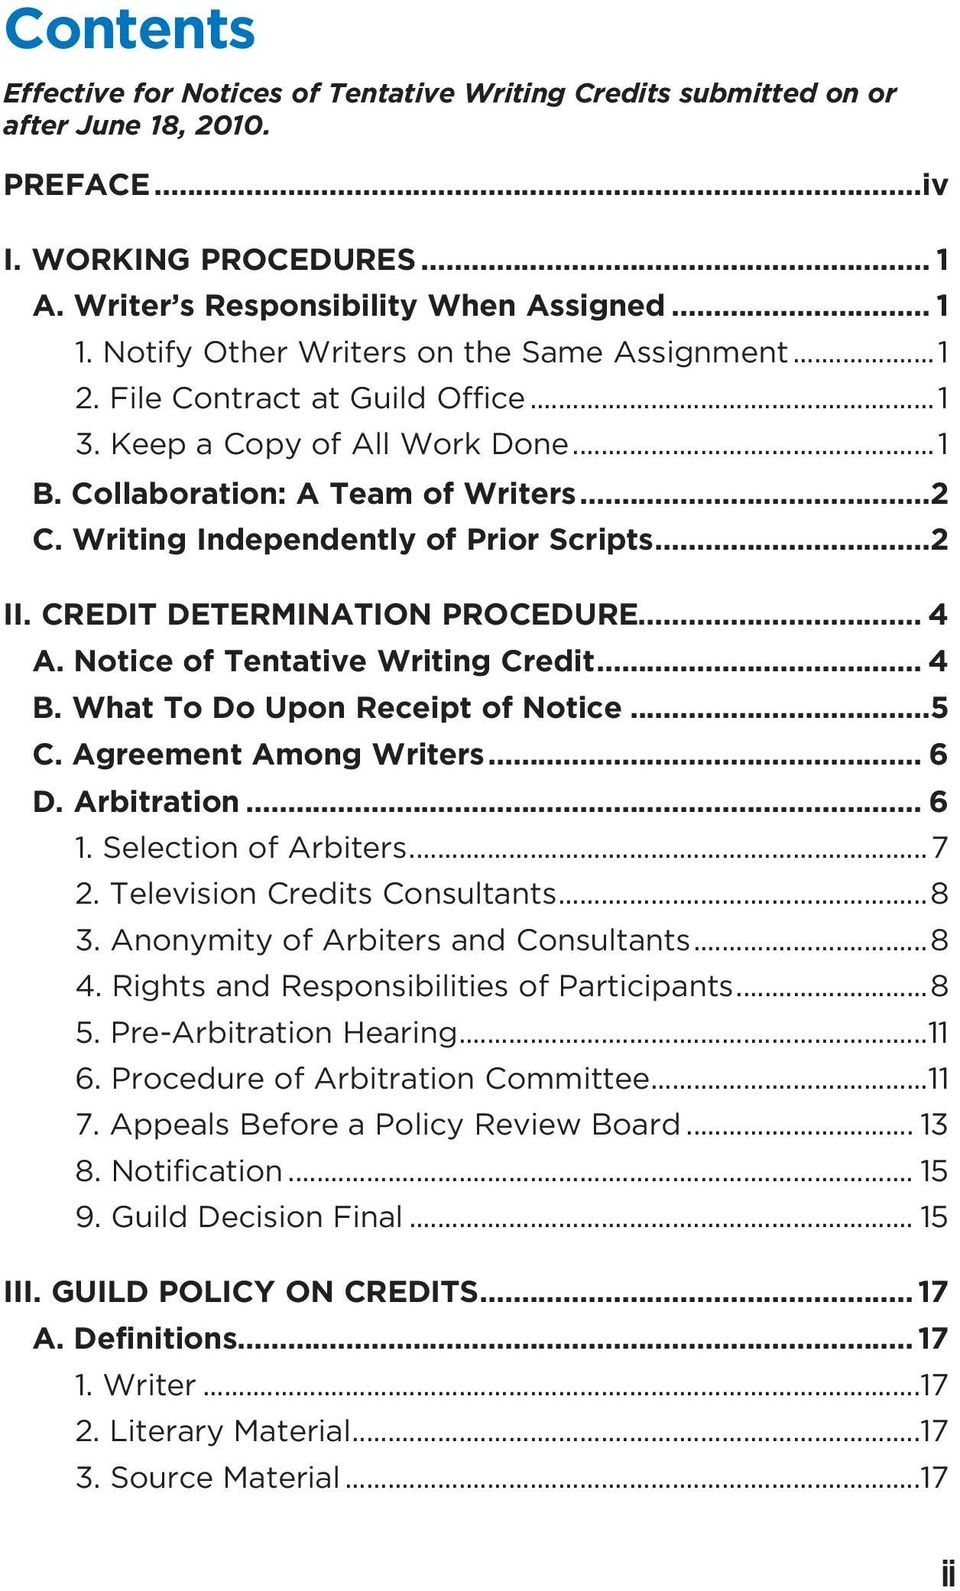 Writing Independently of Prior Scripts...2 II. CREDIT DETERMINATION PROCEDURE... 4 A. Notice of Tentative Writing Credit... 4 B. What To Do Upon Receipt of Notice...5 C. Agreement Among Writers... 6 D.